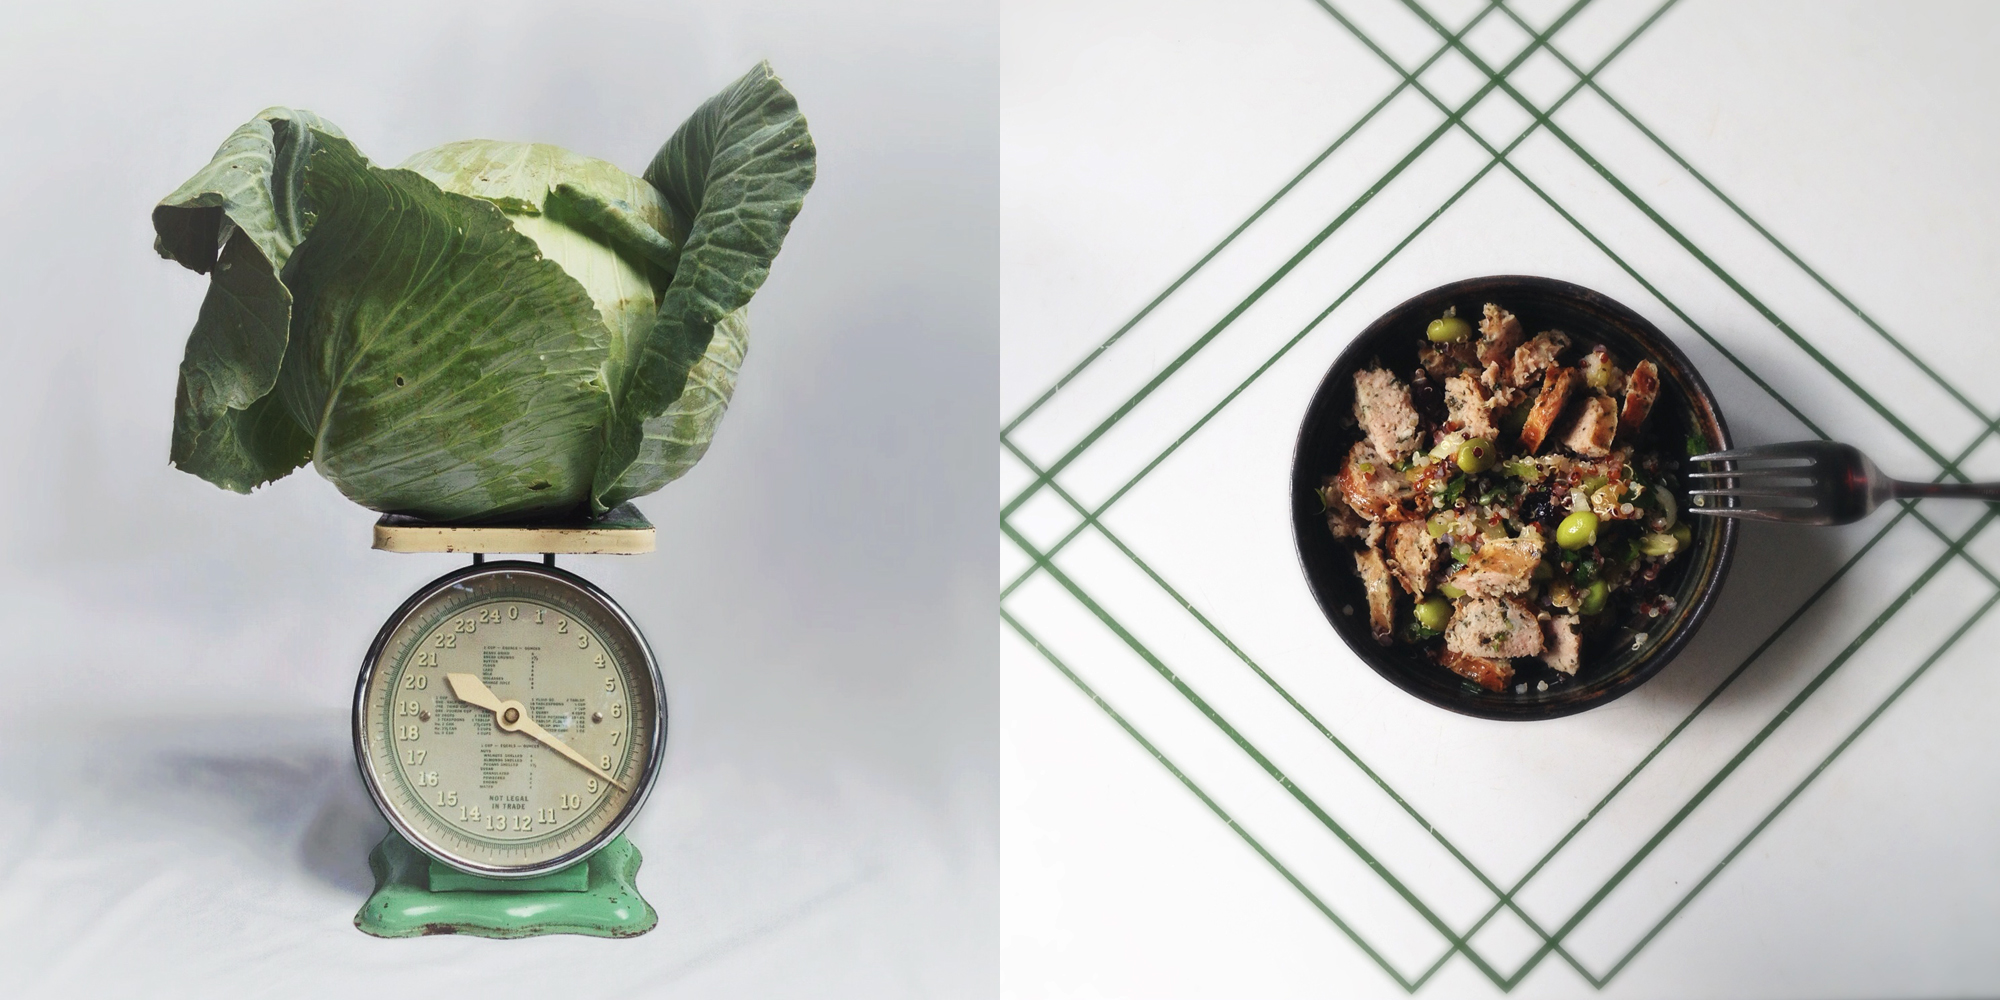 cabbage head and soybean quinoa diptych.jpg